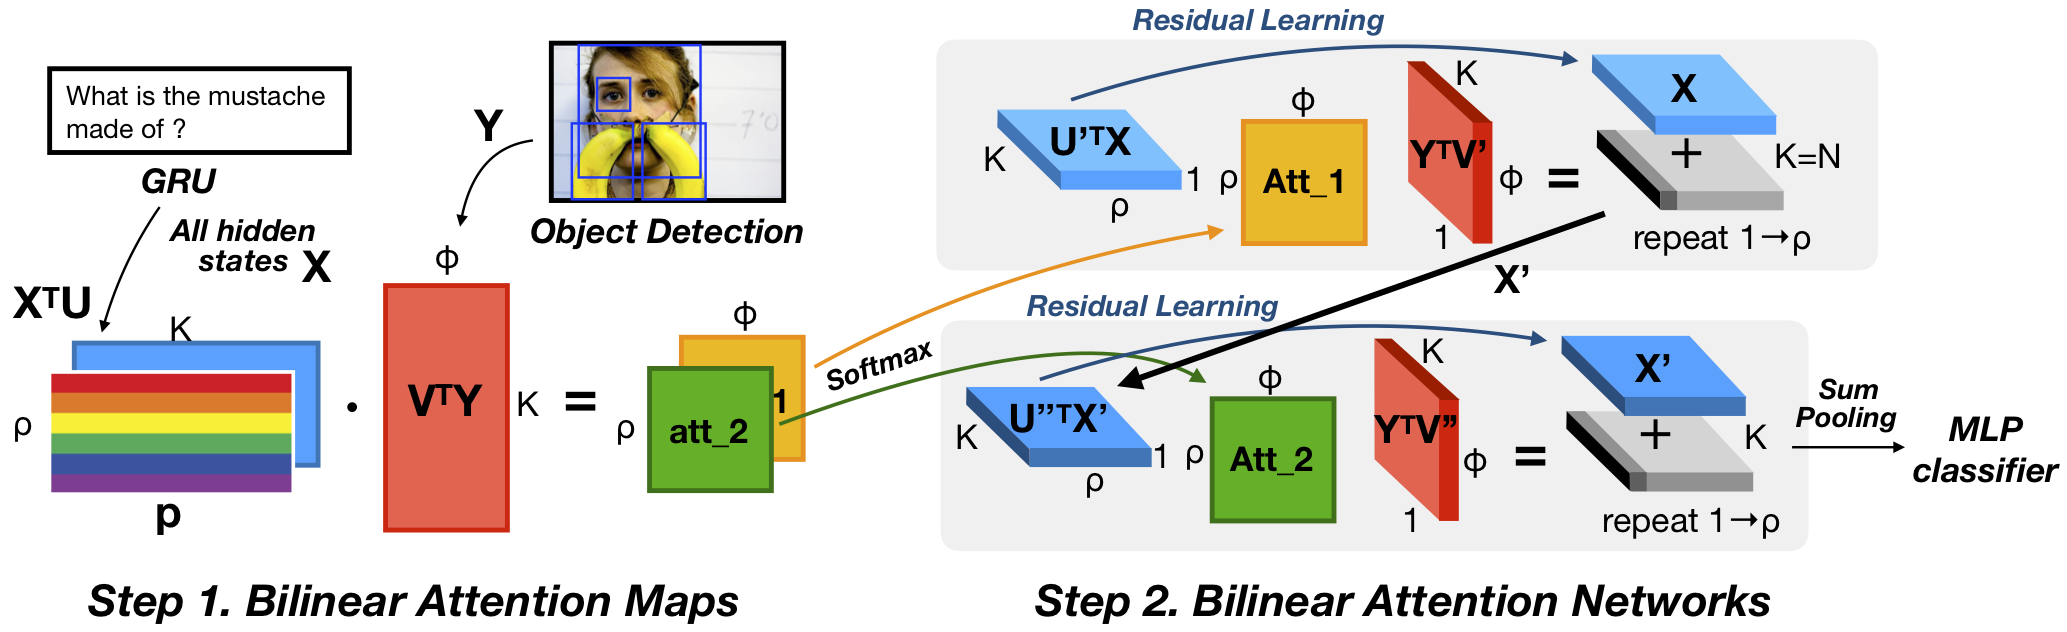 Overview of bilinear attention networks